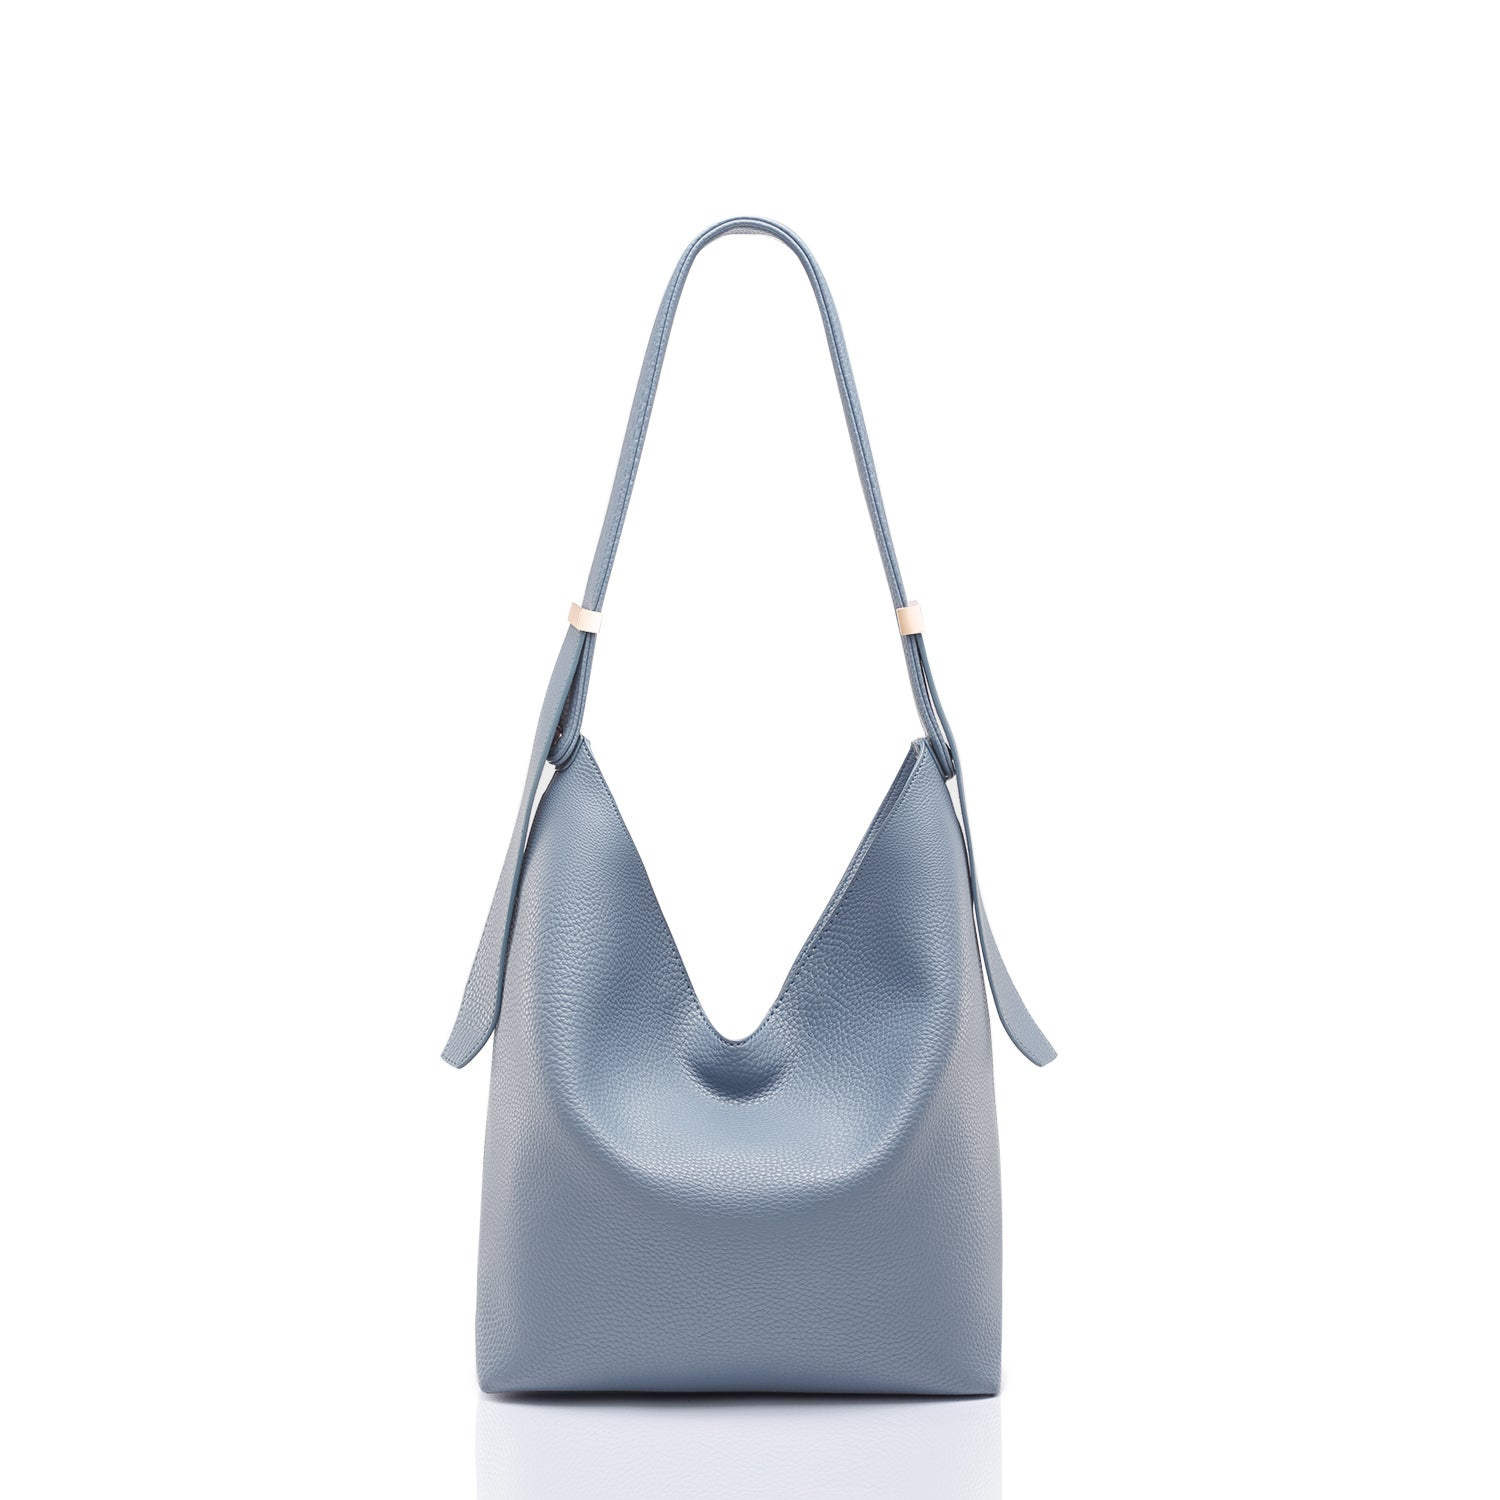 RIBAG HOBO MINI - POWDER BLUE